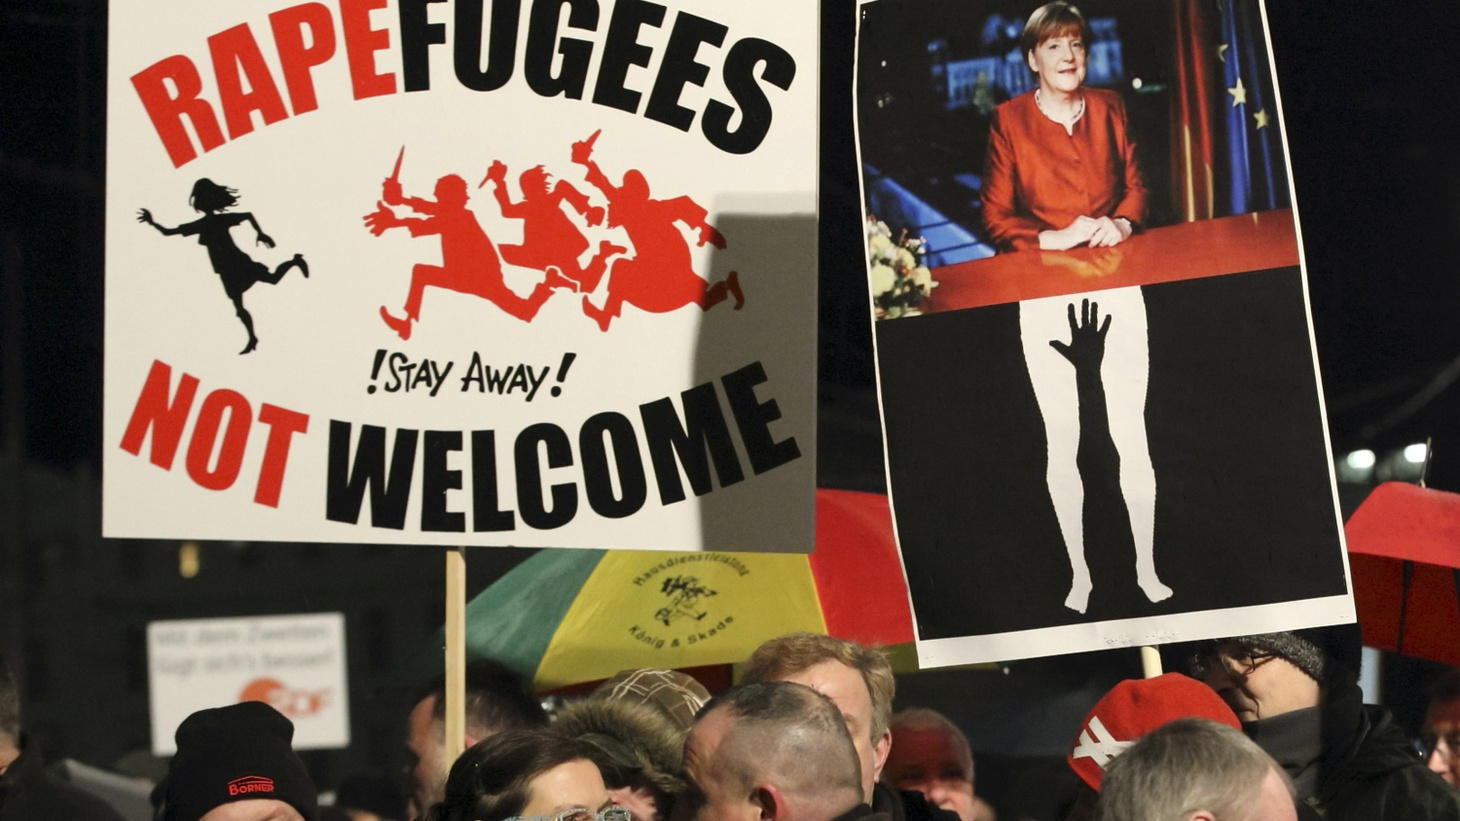 Open borders in Europe are closing again after reports that migrant men from the Middle East and North Africa sexually abused women on the streets of Cologne and other cities. We look at the consequences for innocent refugees and European unity.